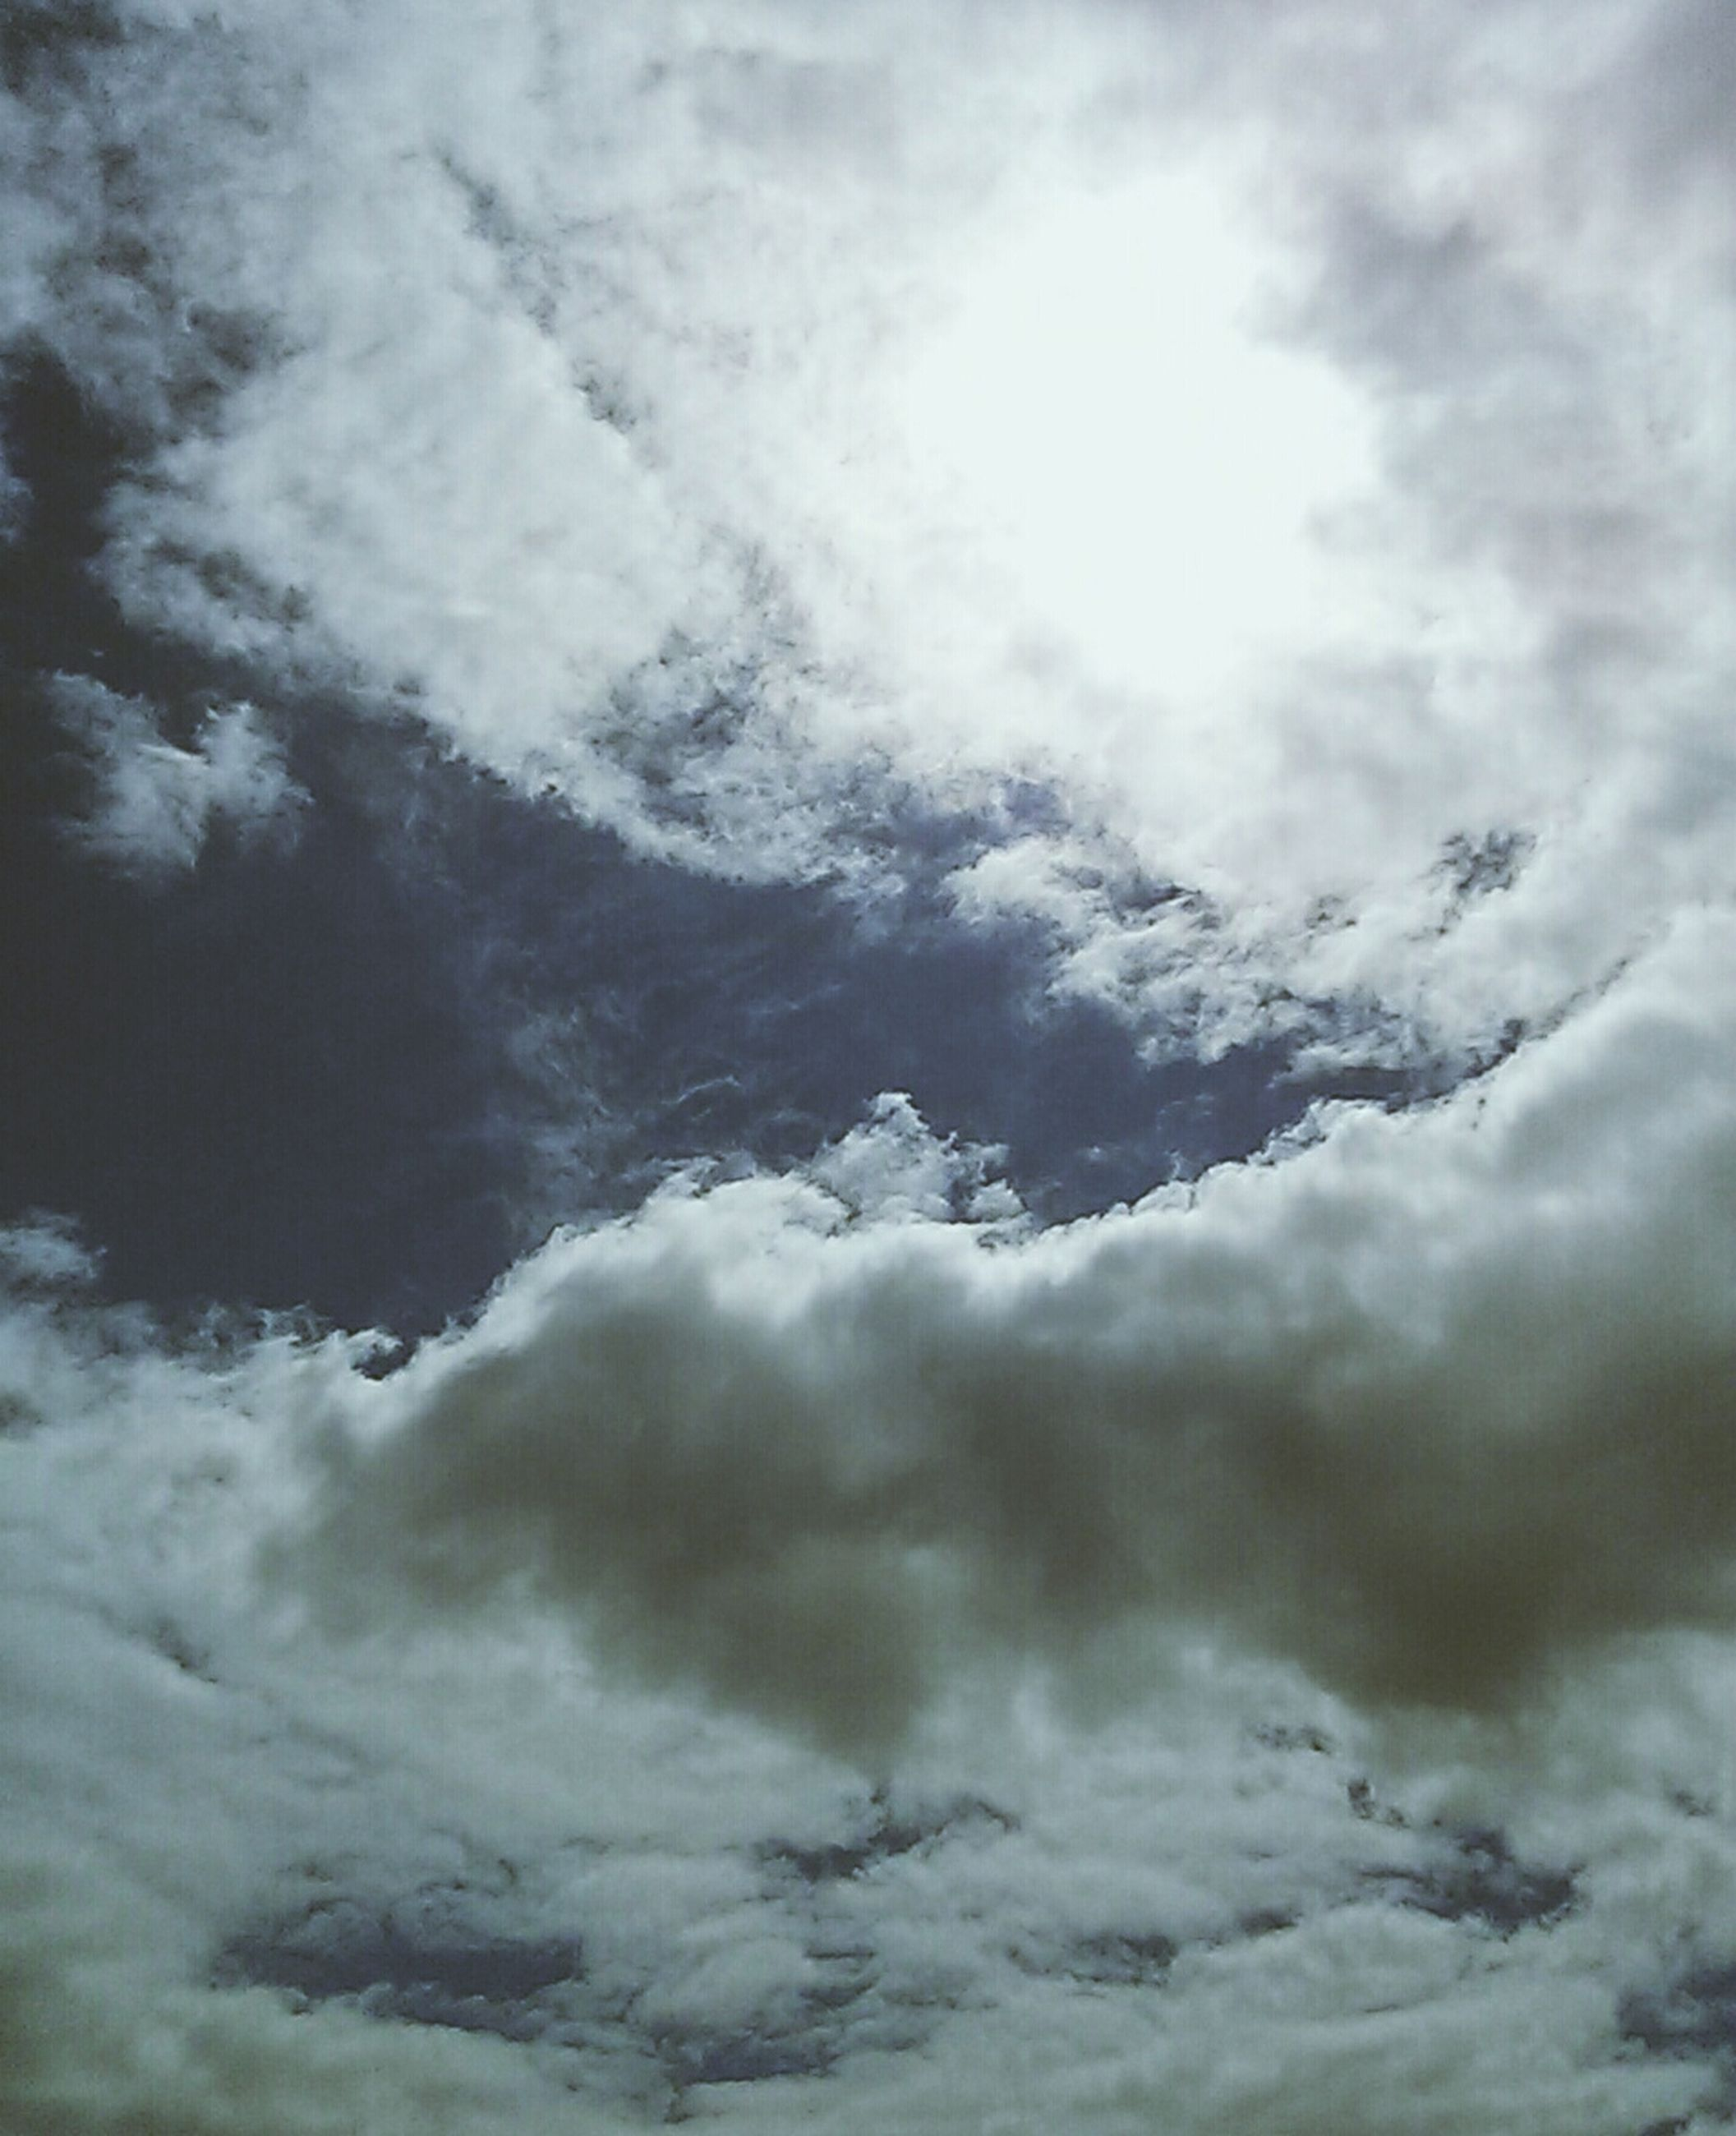 cloud - sky, sky, cloudy, weather, beauty in nature, low angle view, cloudscape, tranquility, scenics, sky only, nature, tranquil scene, overcast, cloud, backgrounds, full frame, idyllic, white color, day, outdoors